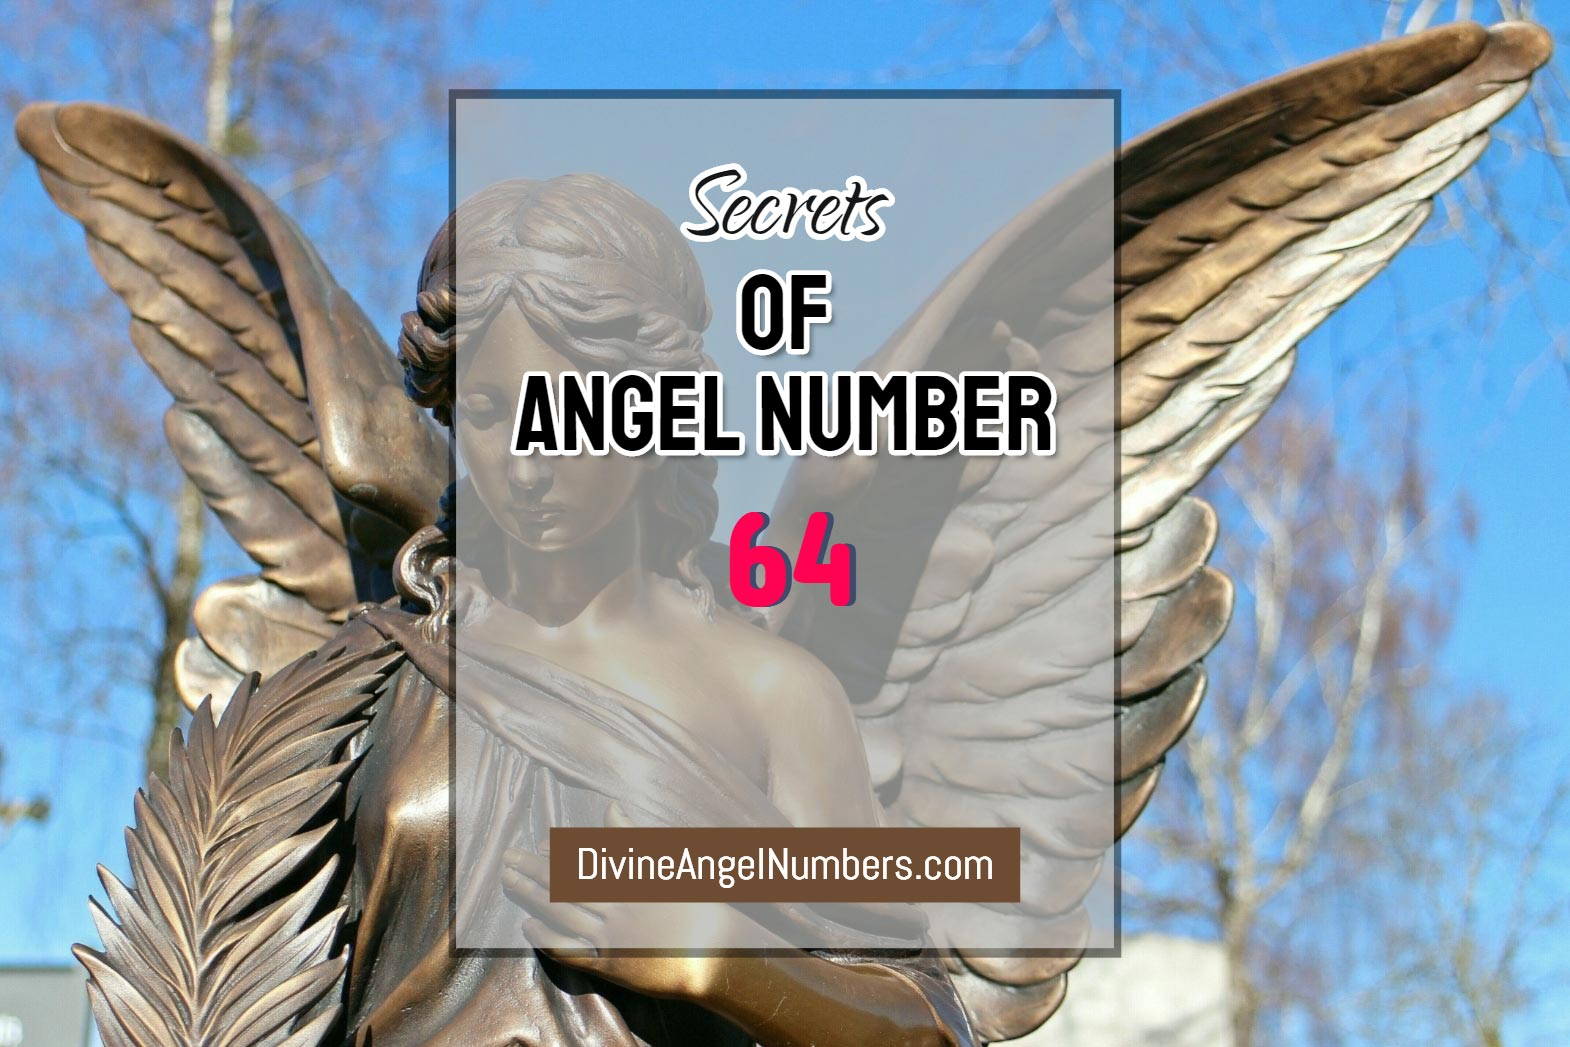 6 Reasons Why You Are Seeing Angel Number 64 - Meaning Of 64